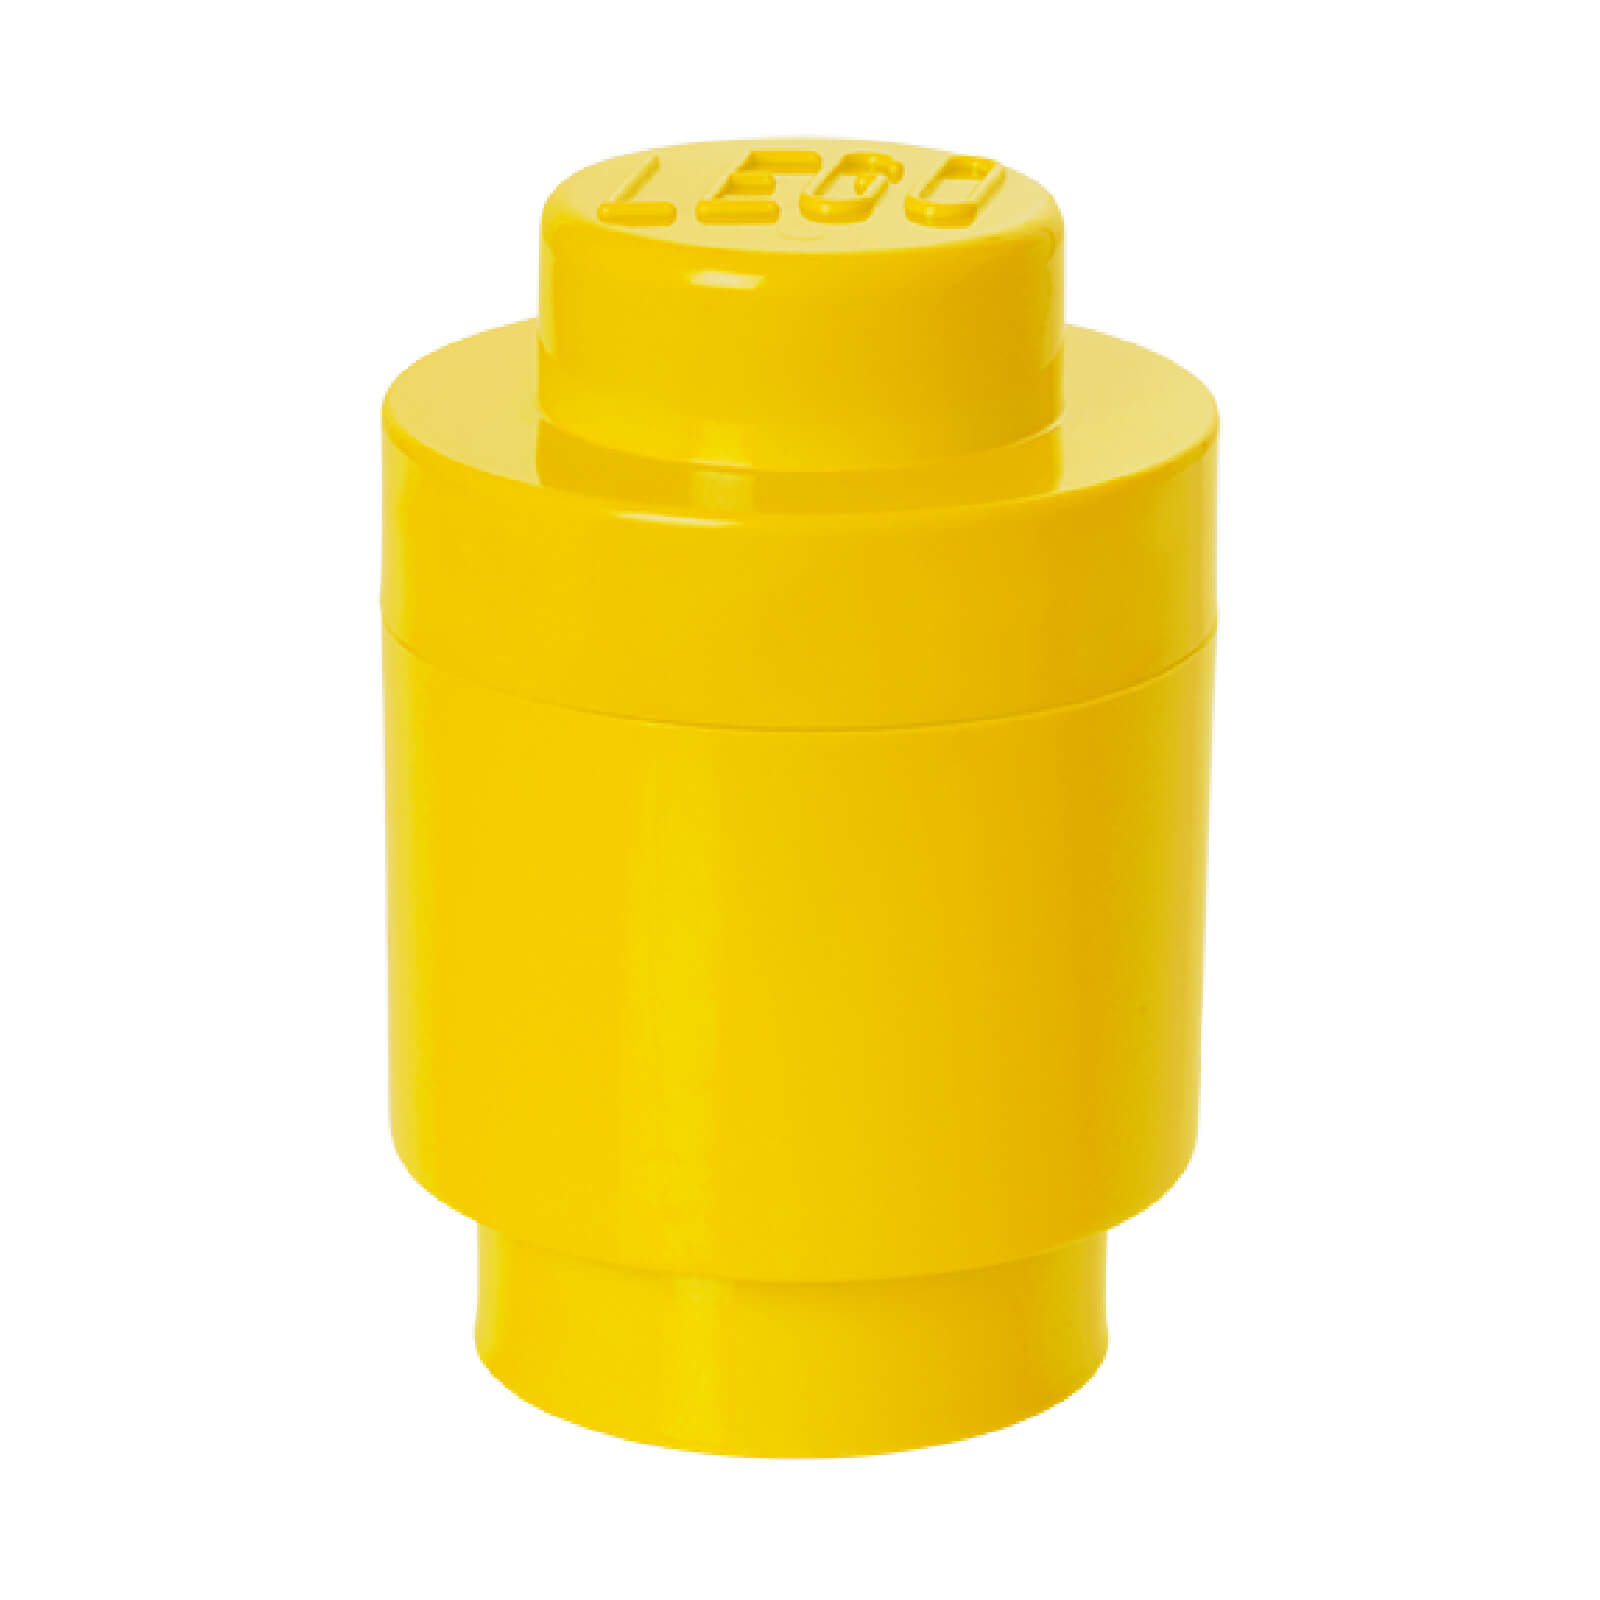 LEGO Storage Brick 1 - Bright Yellow (Round)